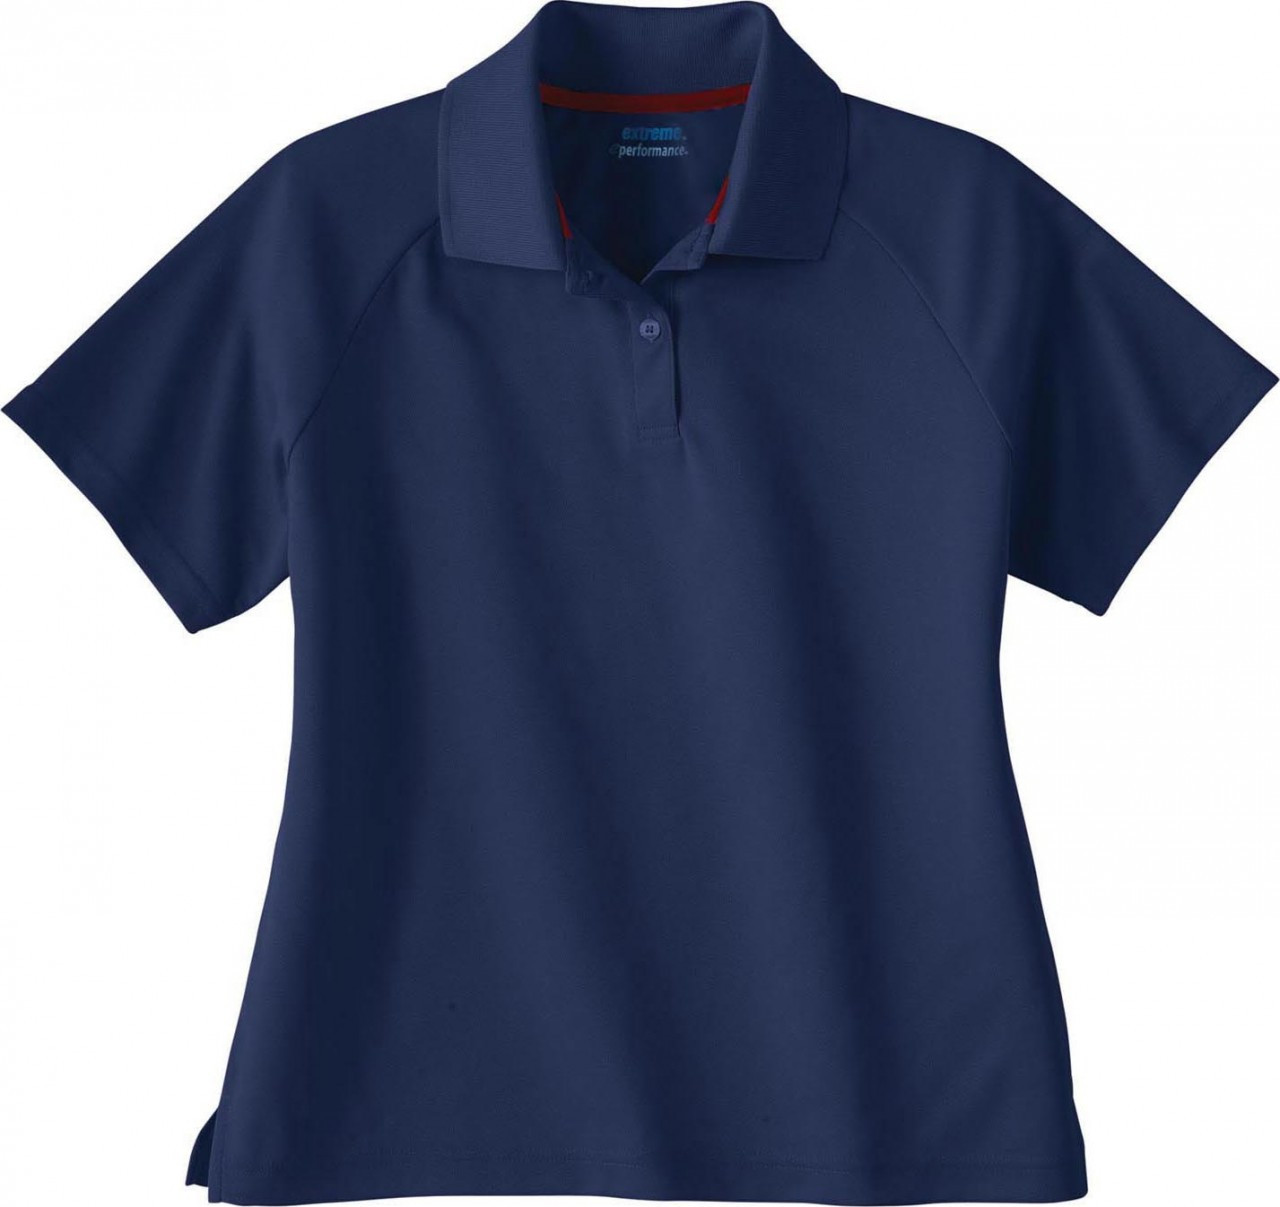 Classic Navy - 75046 Extreme Ladies' Eperformance Pique Polo Shirt | BlankClothing.ca